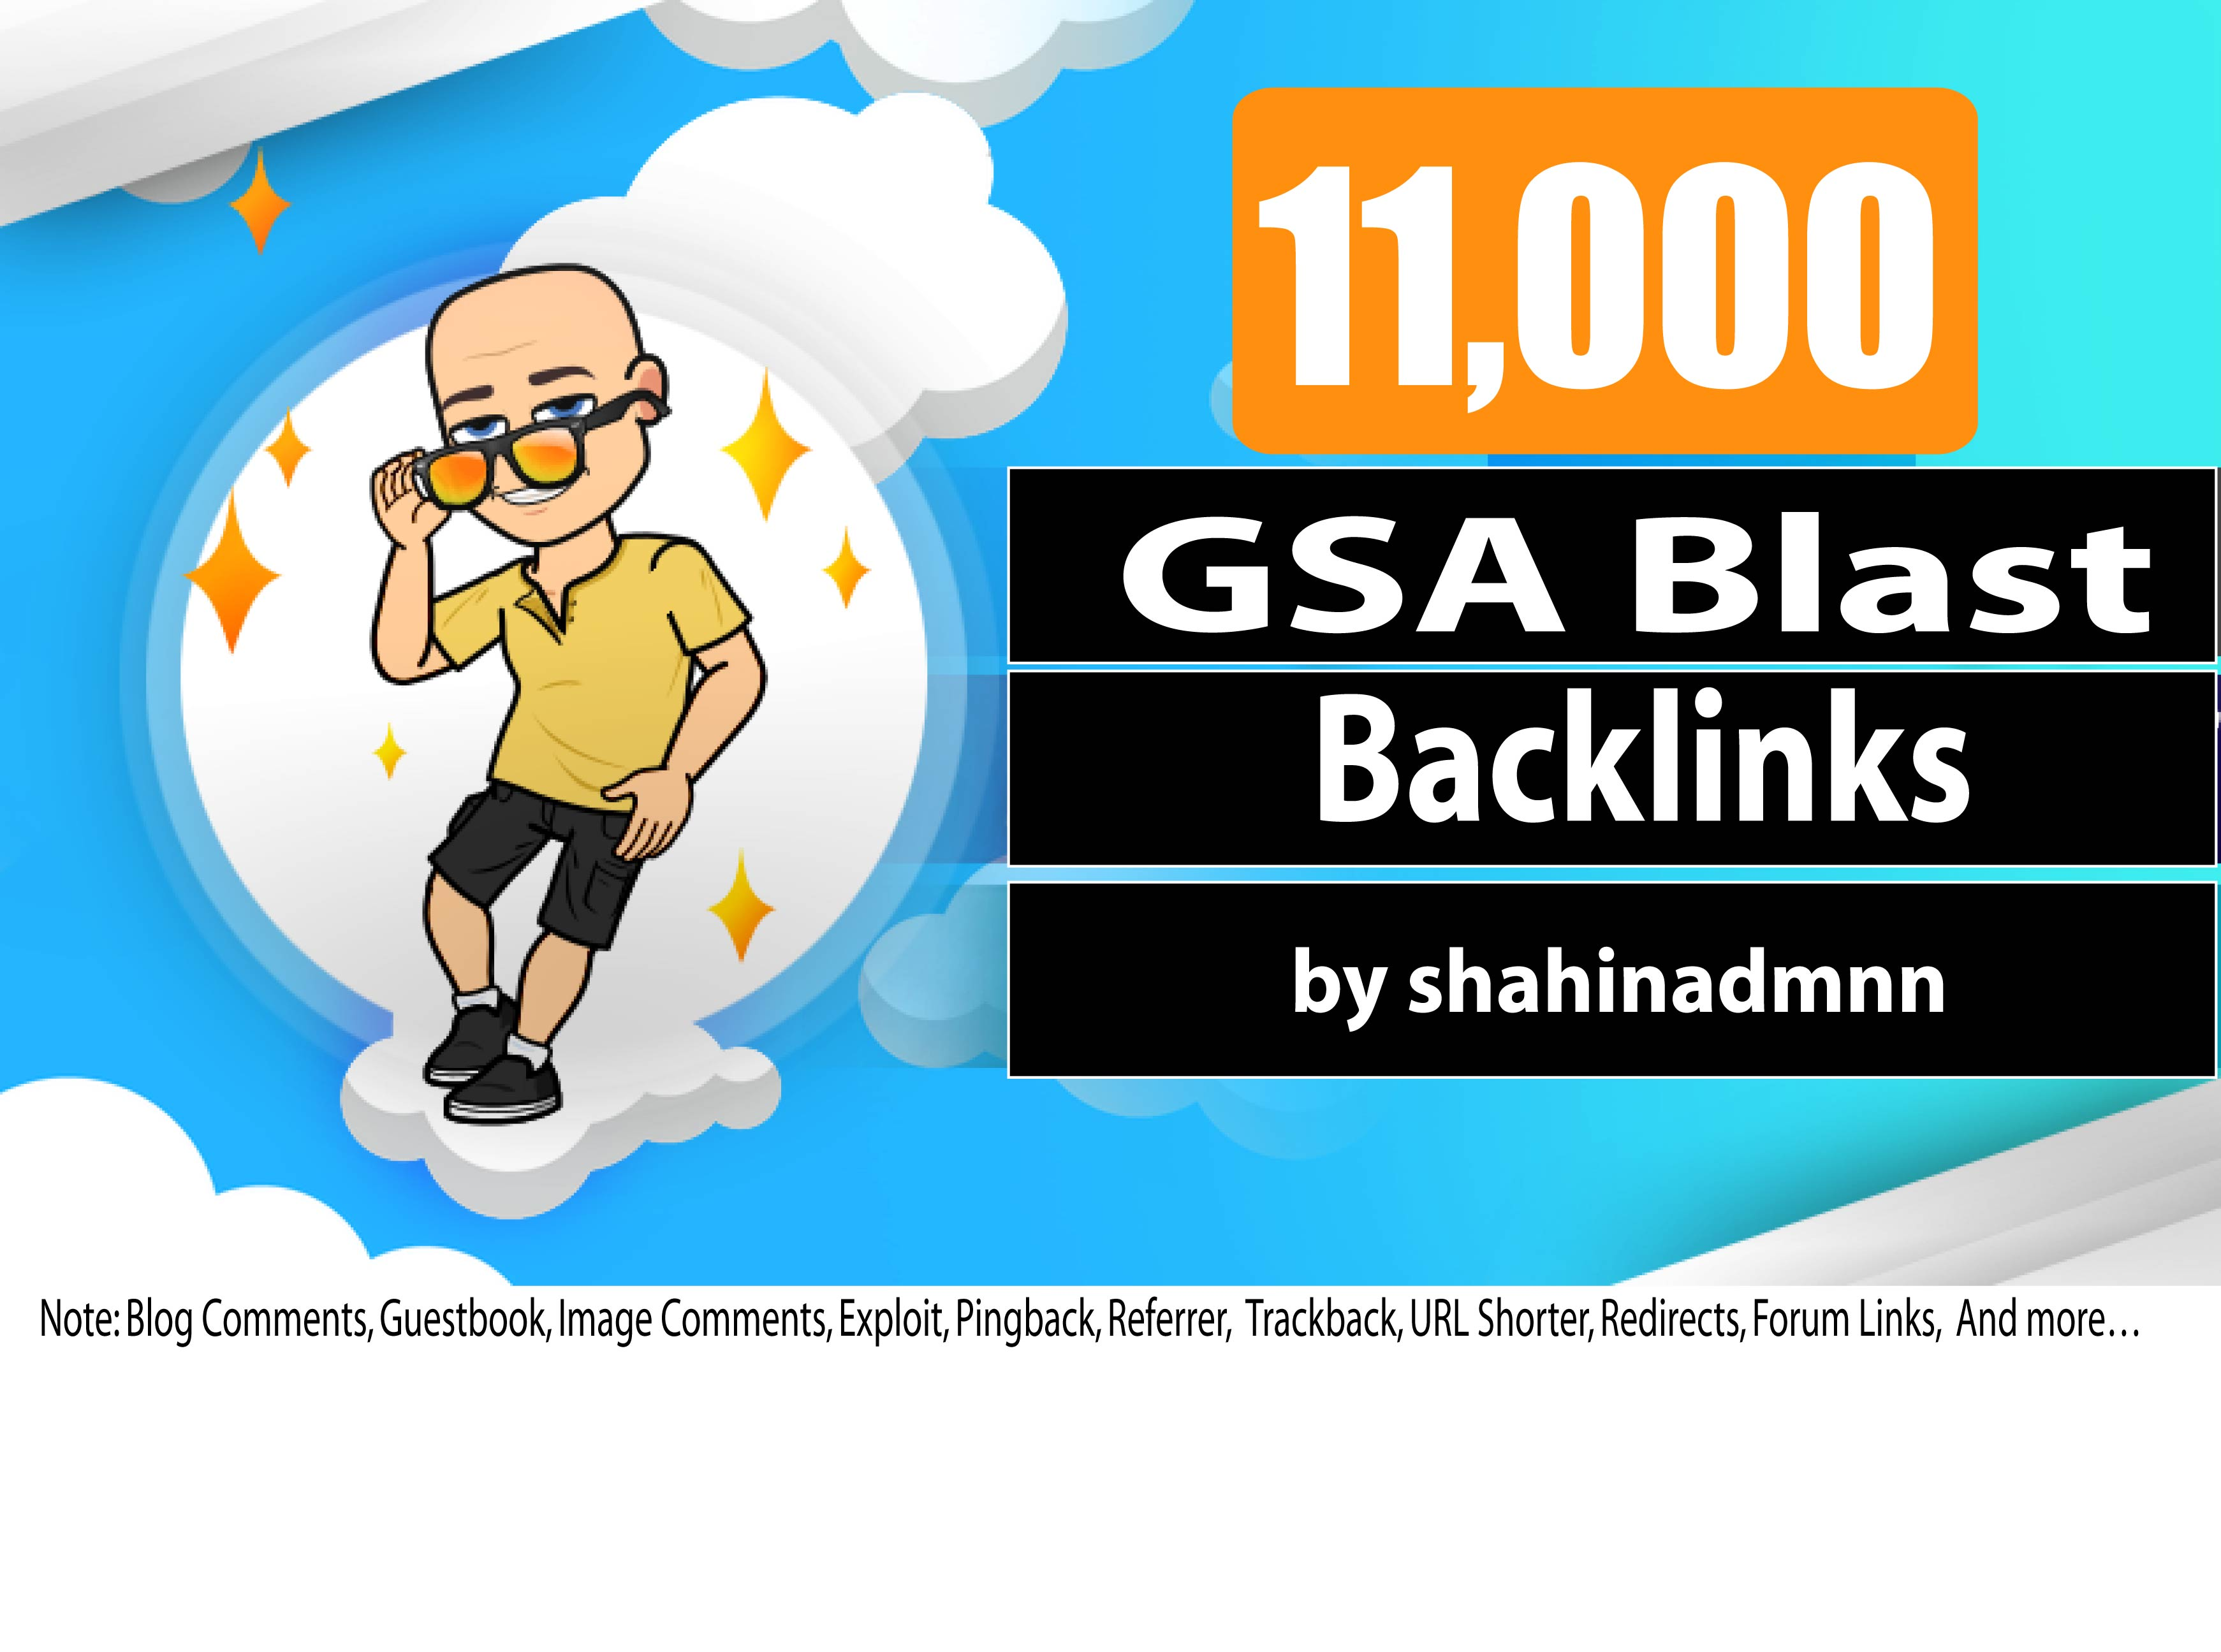 Create 11,000 GSA Backlinks & GSA Blast